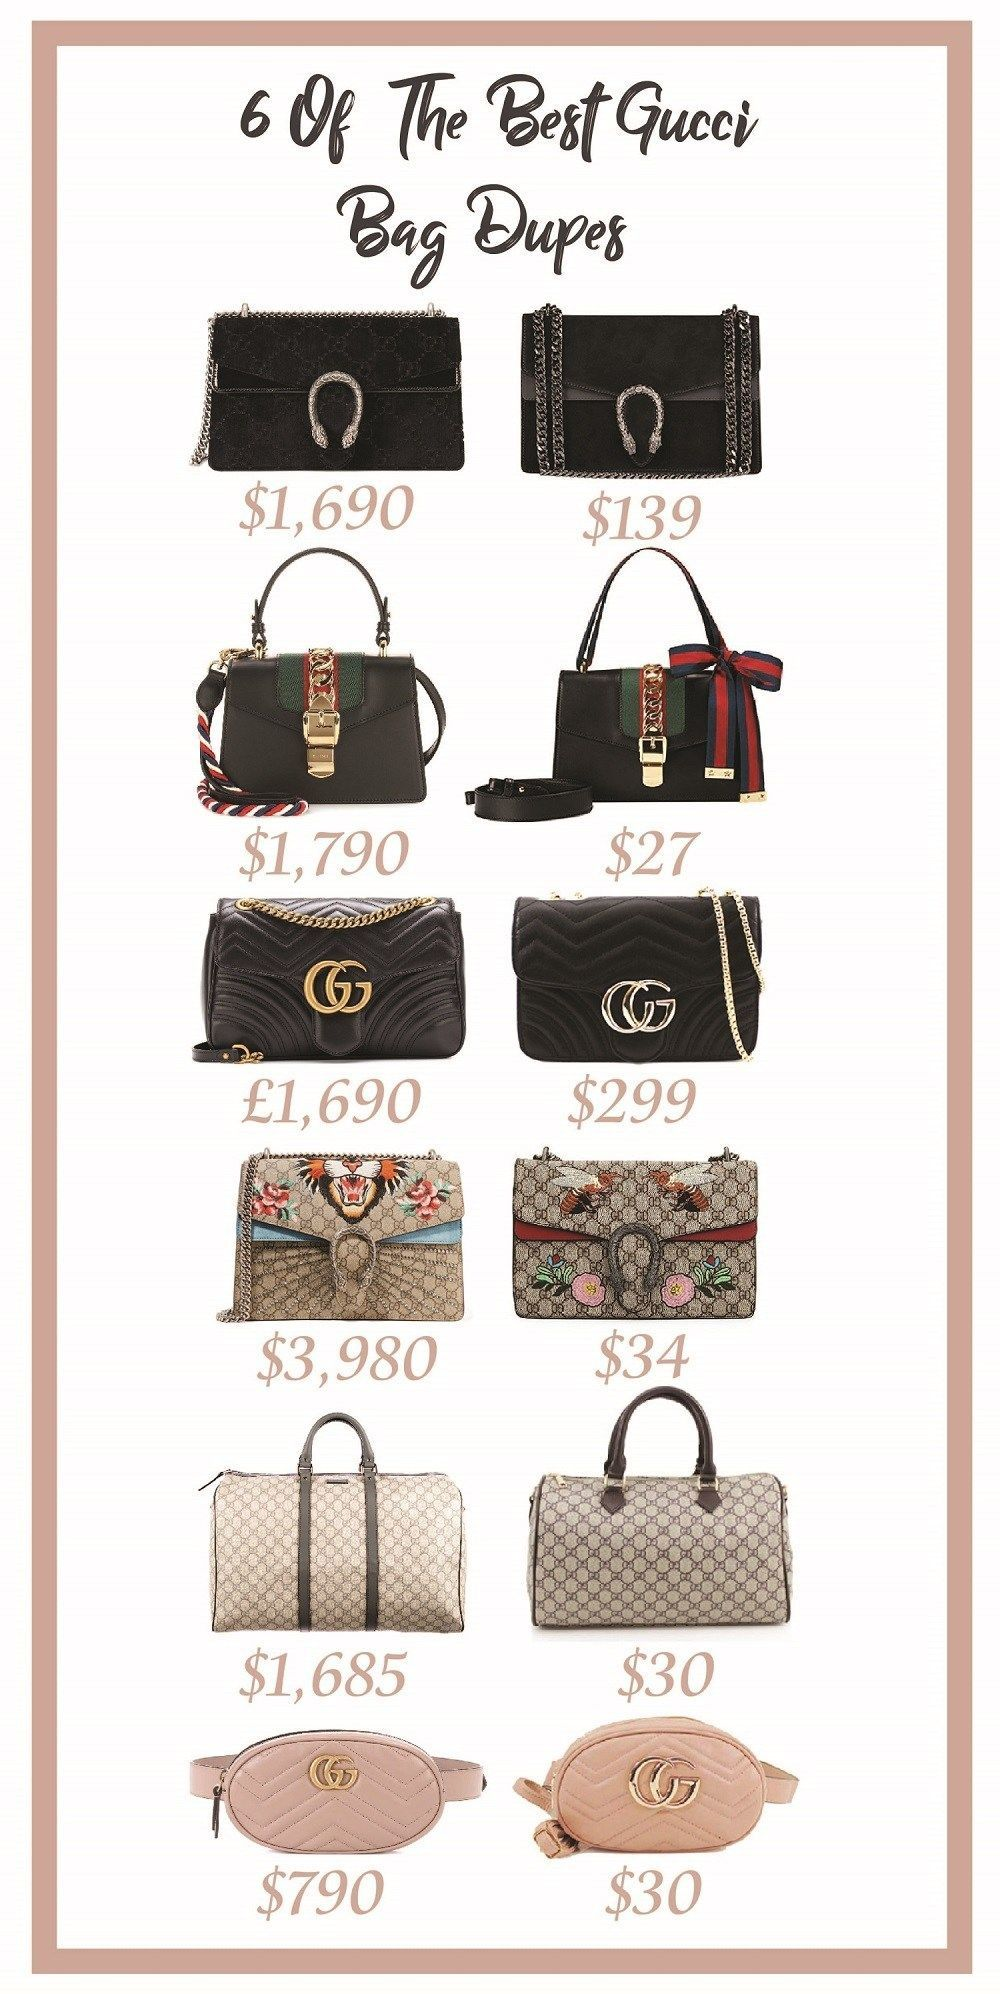 6 Of The Best Gucci Bag Dupes gucciovertheshoulderbag